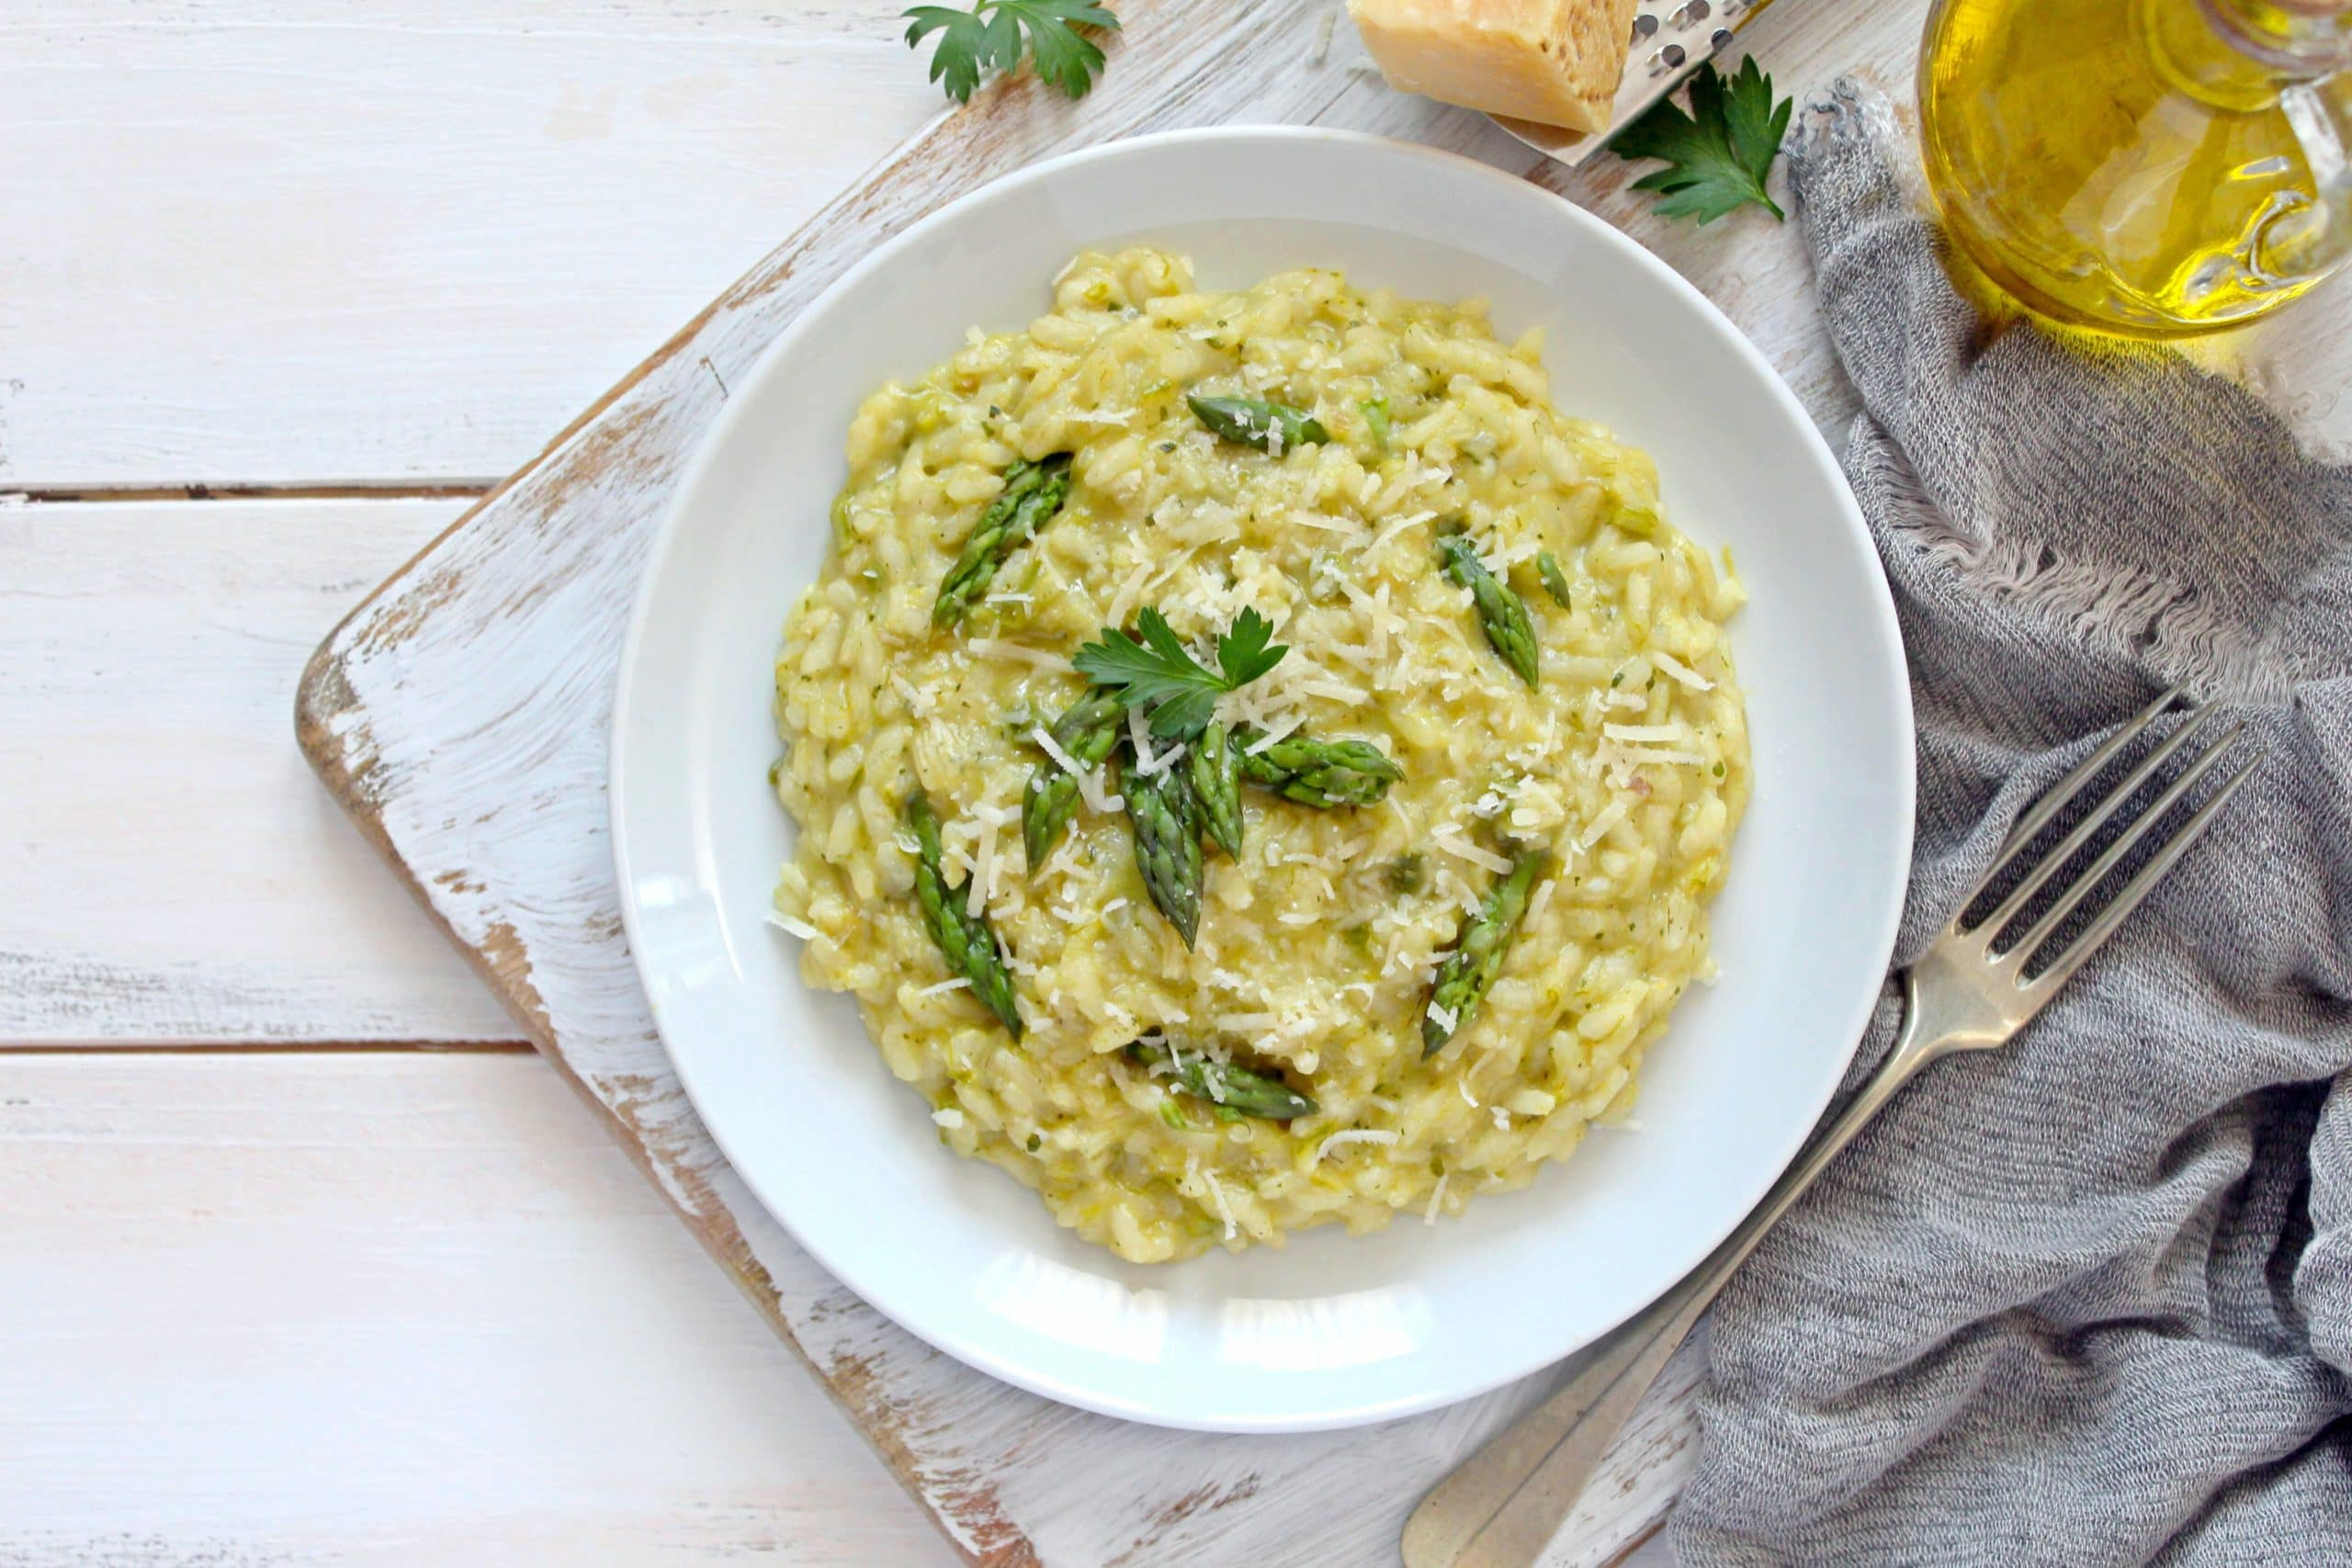 Italian Risotto With Spring Asparagus And Parmesan Cheese In Plate On Light Background. Top View With Copy Space.